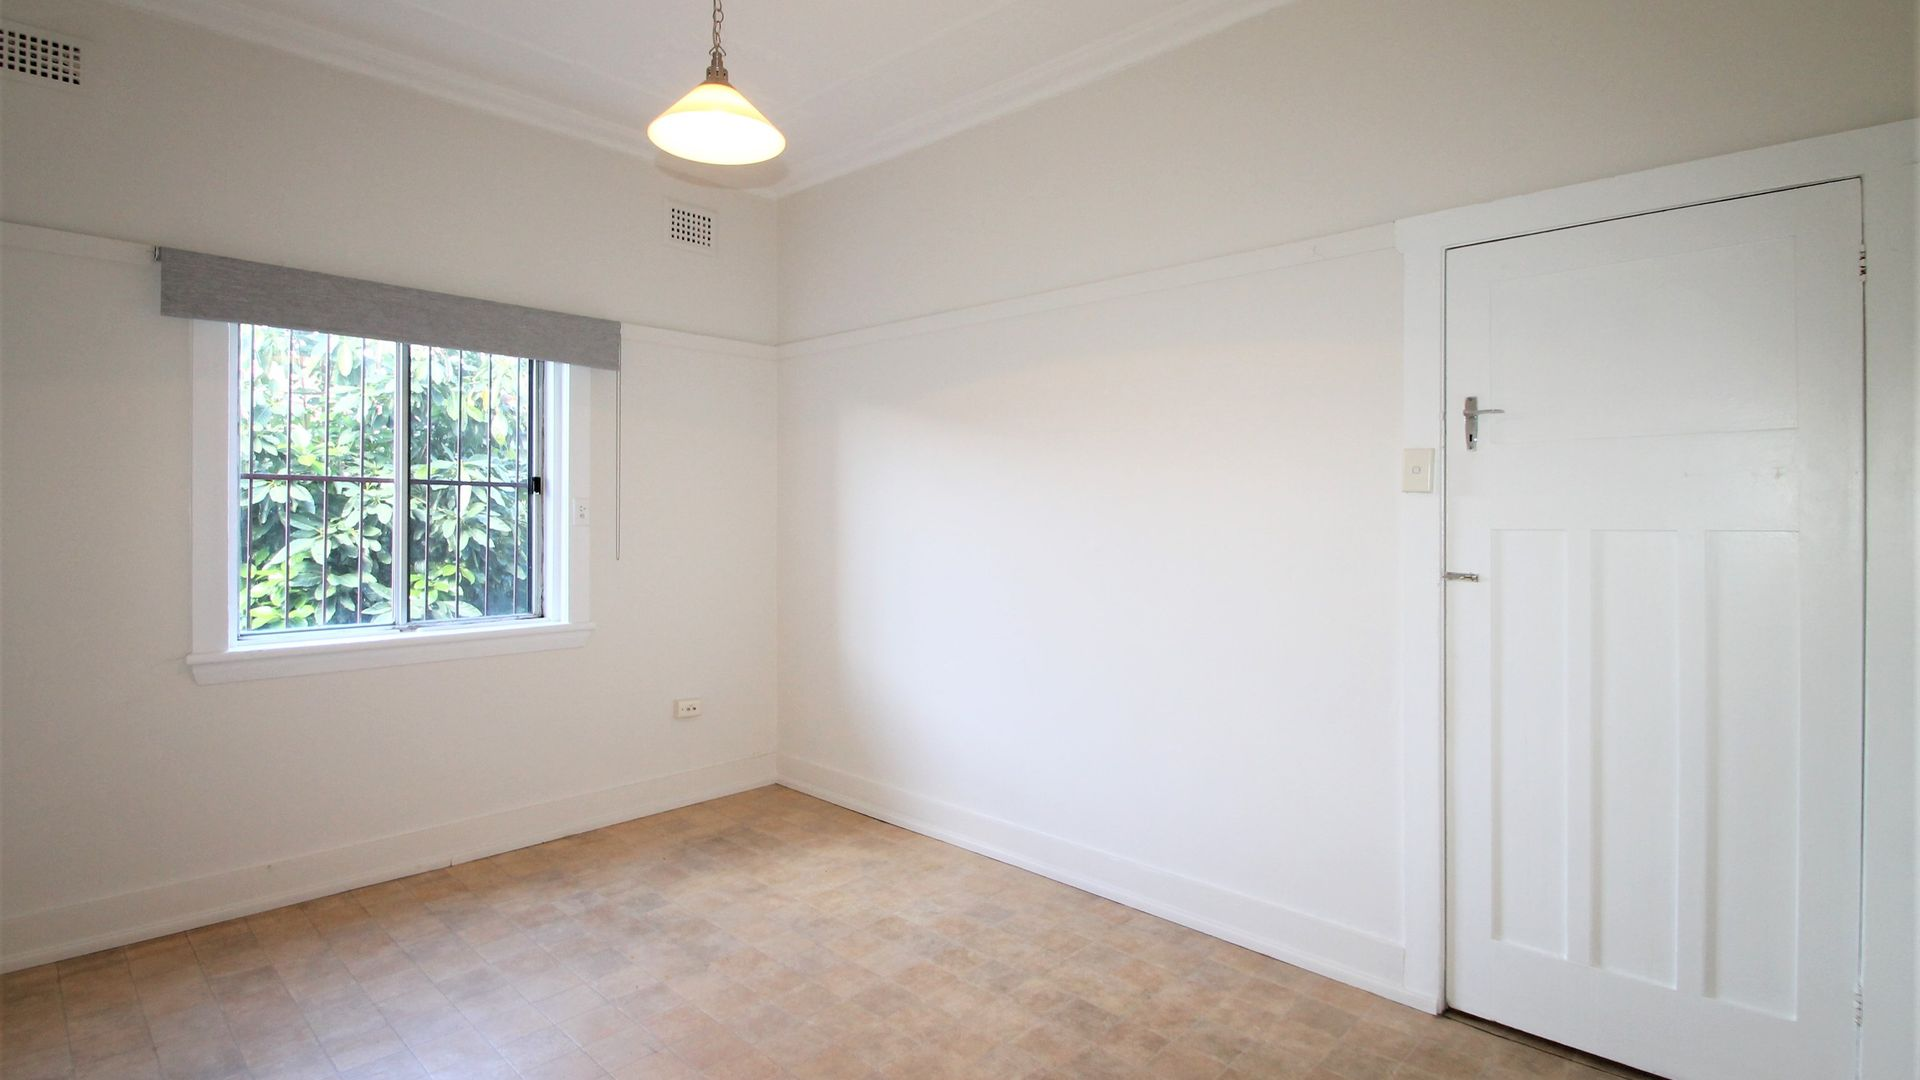 79A Bowden St, Ryde NSW 2112, Image 2